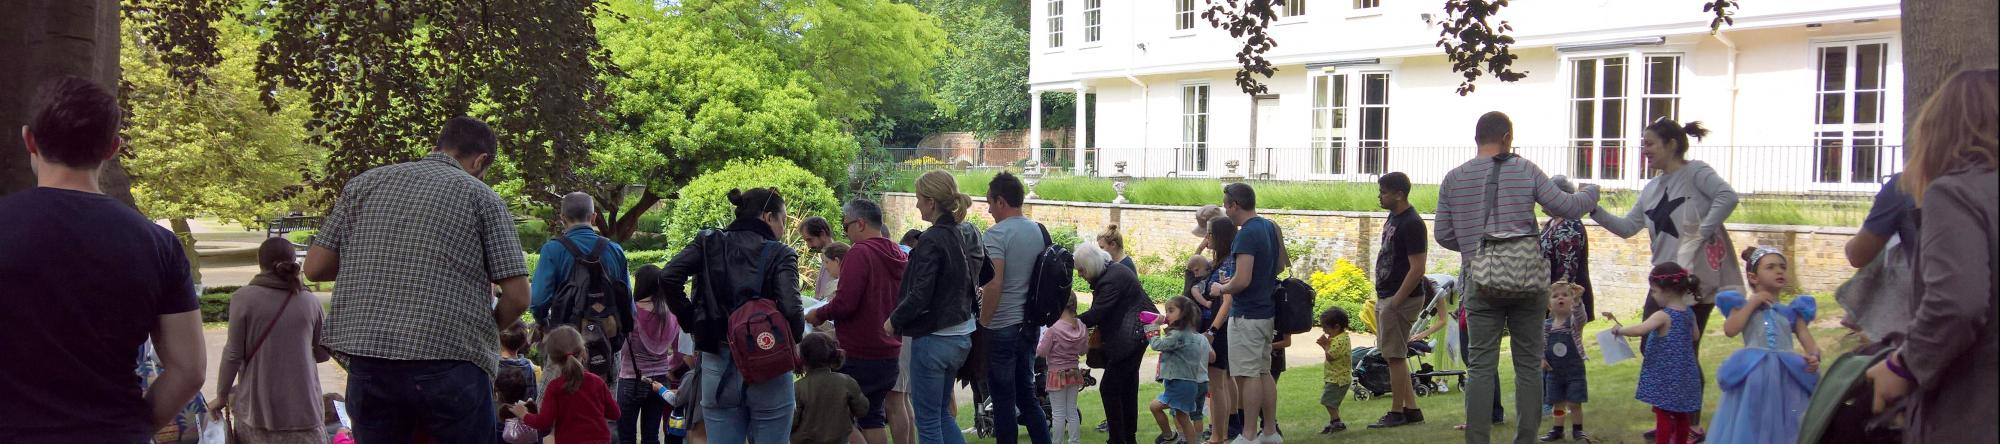 Sally's adventure club outside Lauderdale house